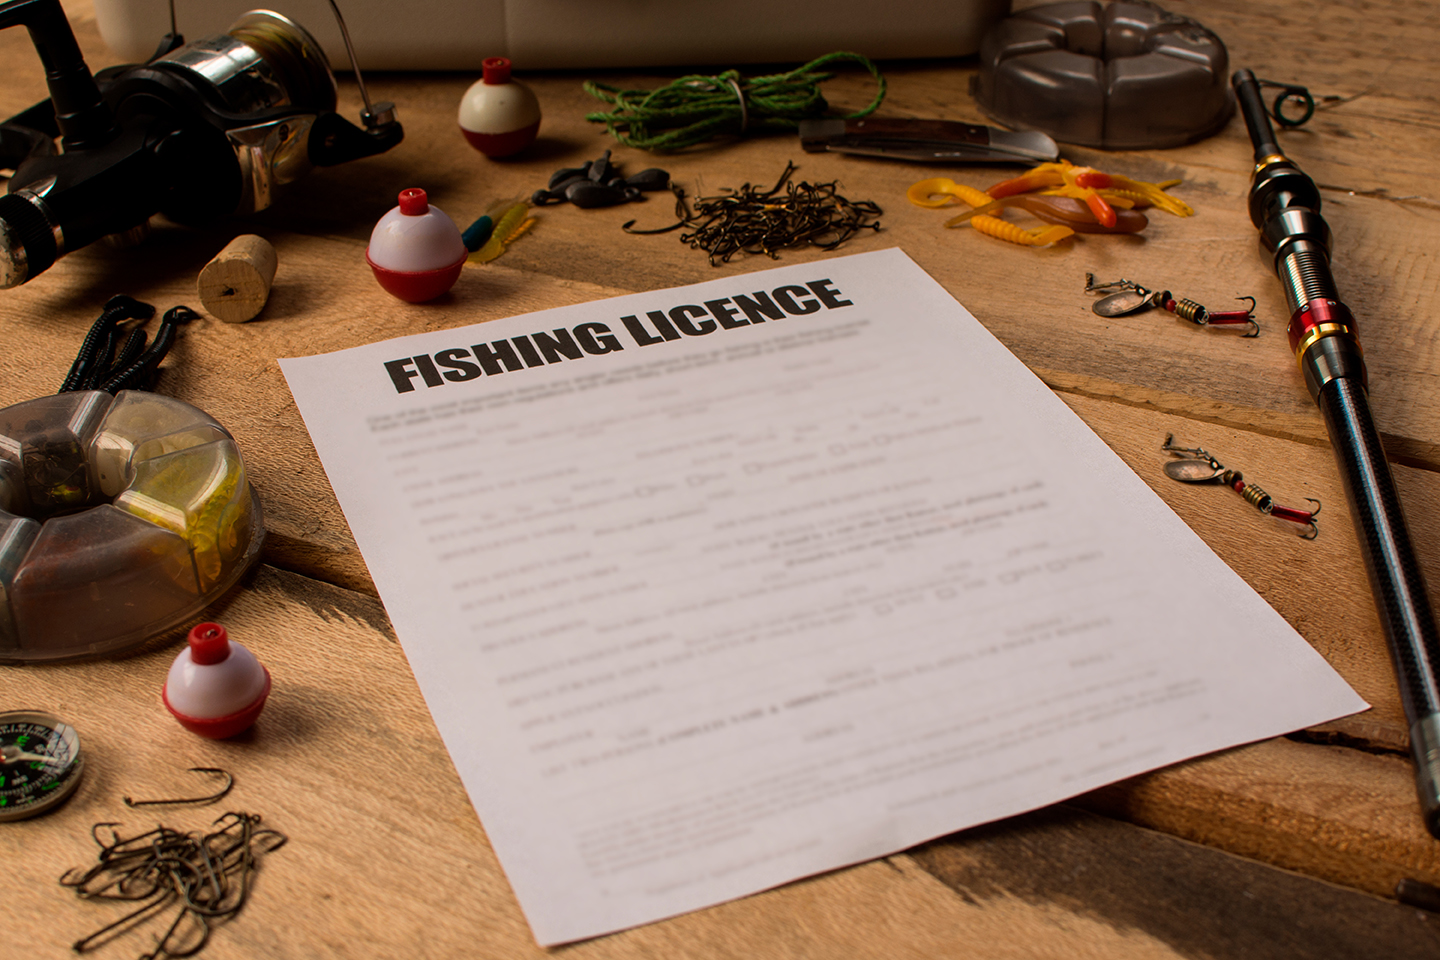 An example rod licence form on a table with an assortment of fishing equipment